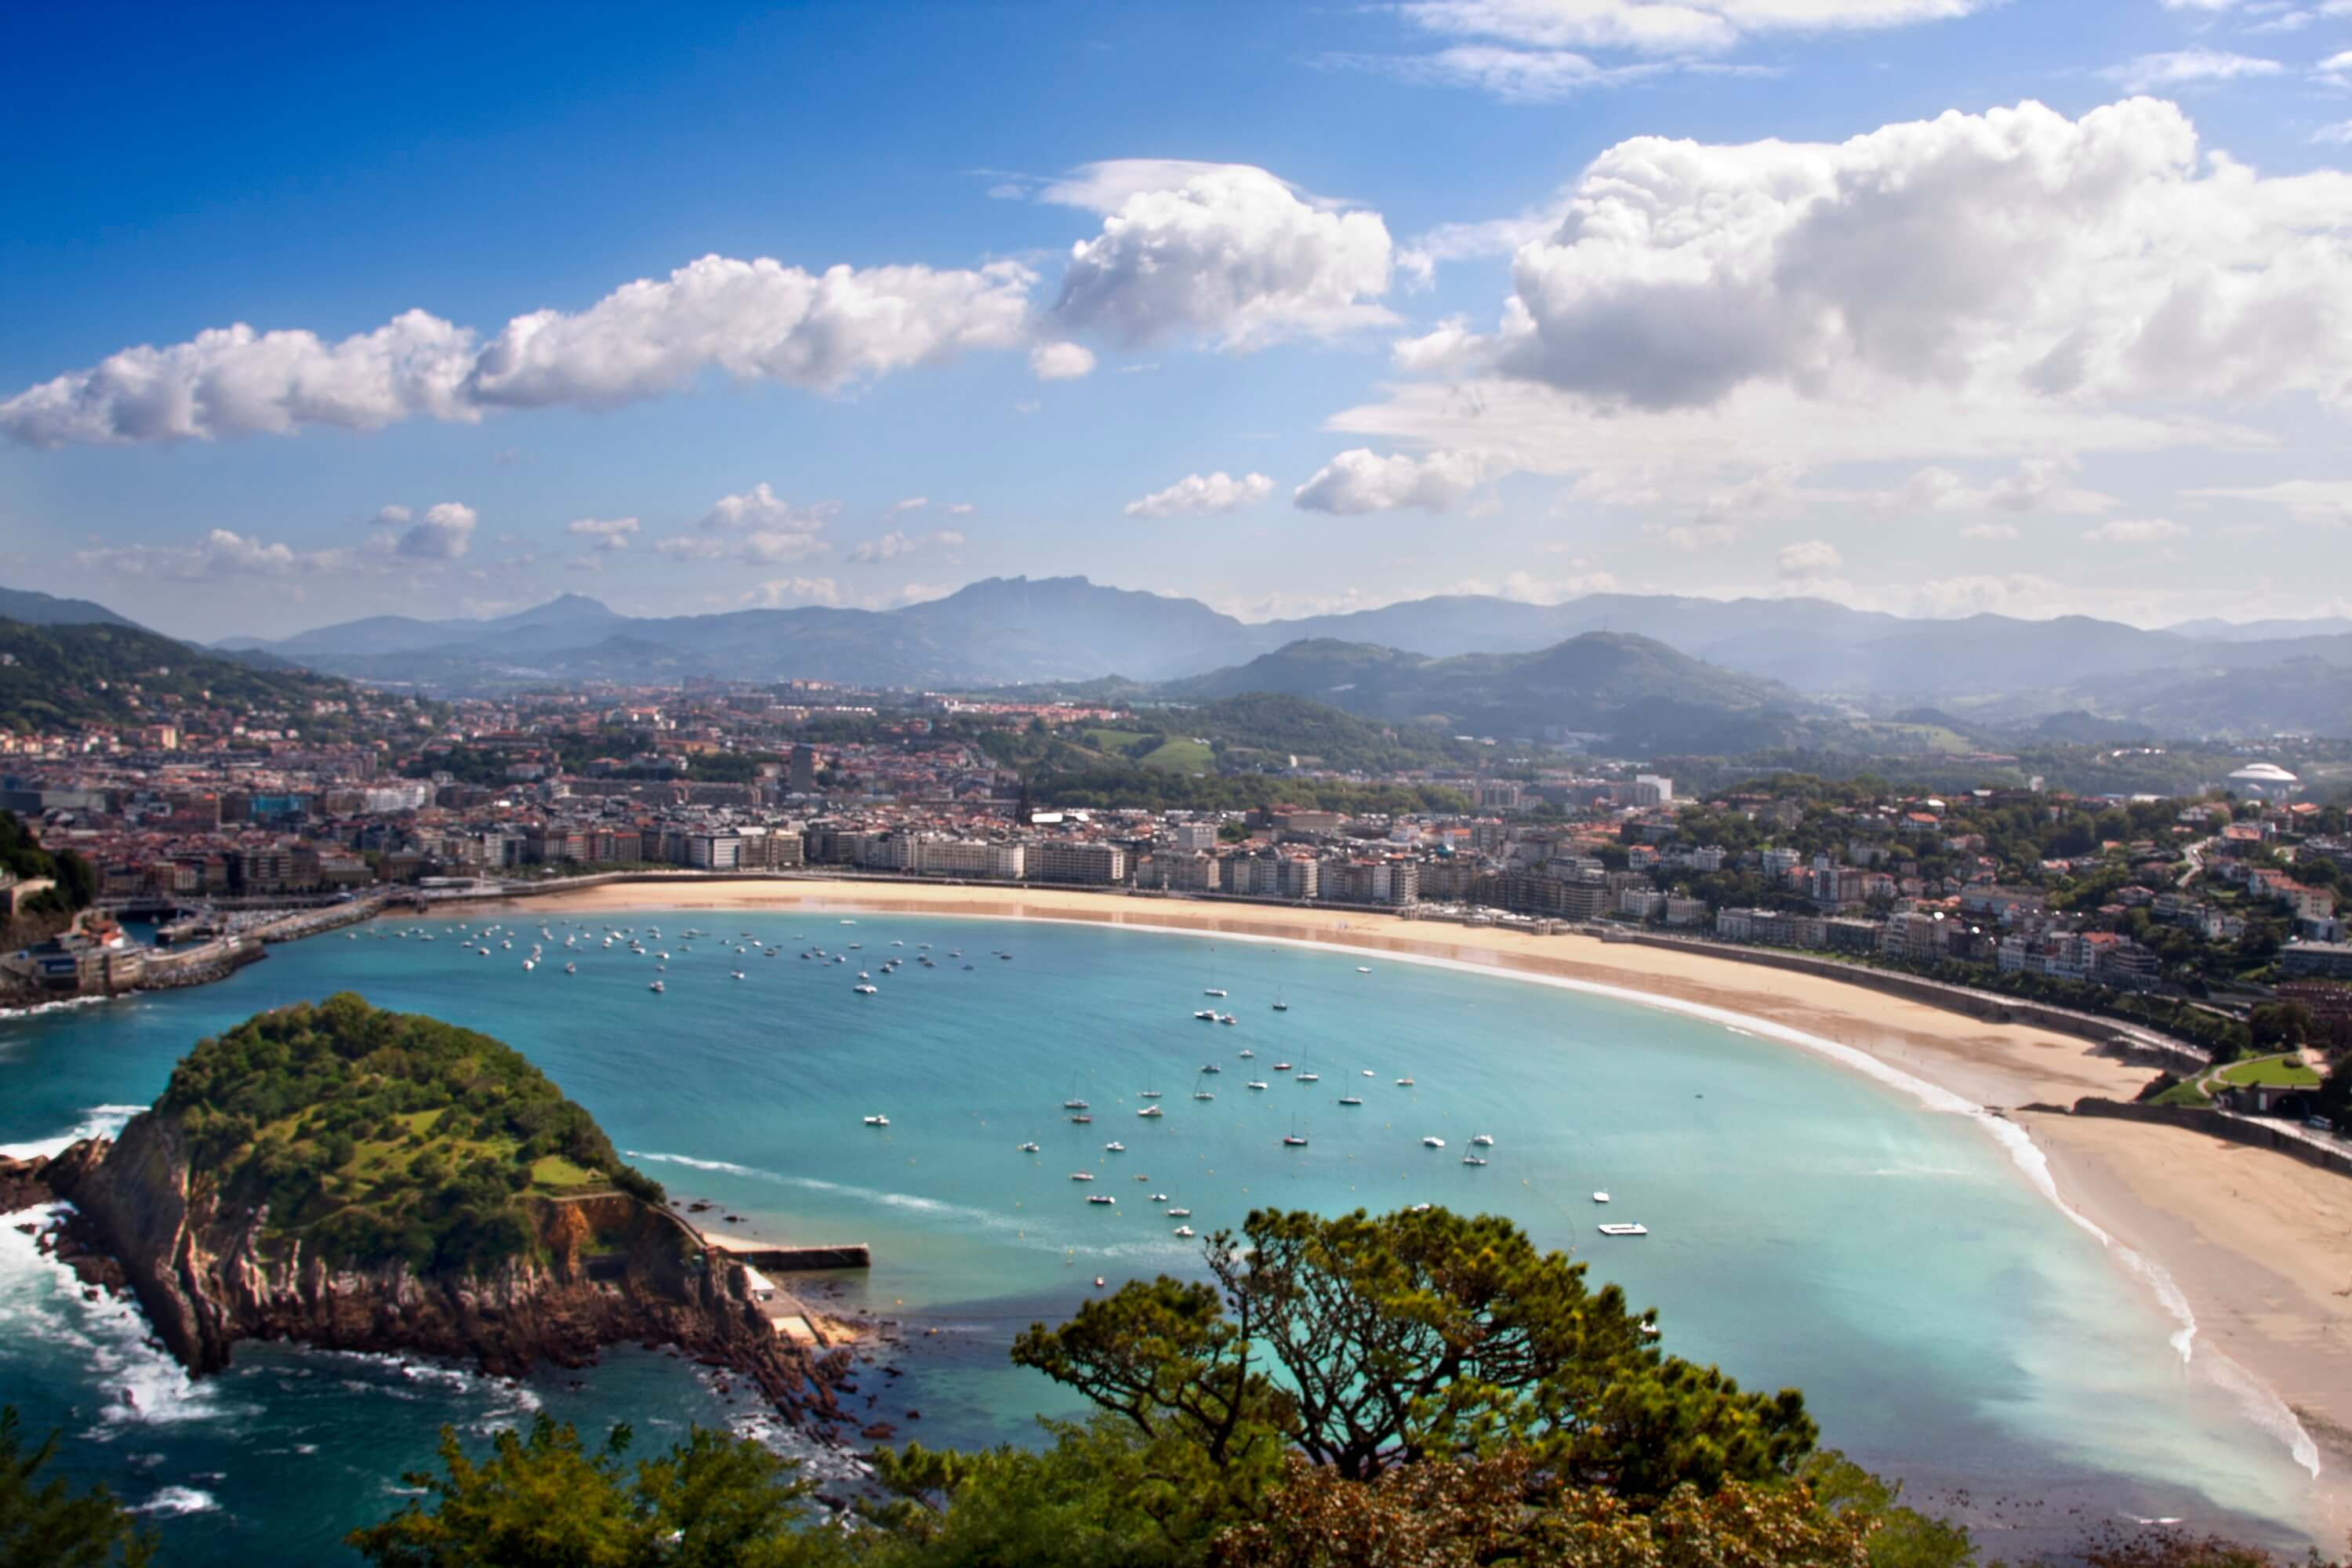 10 best beaches in Spain you should visit before you die - La Concha